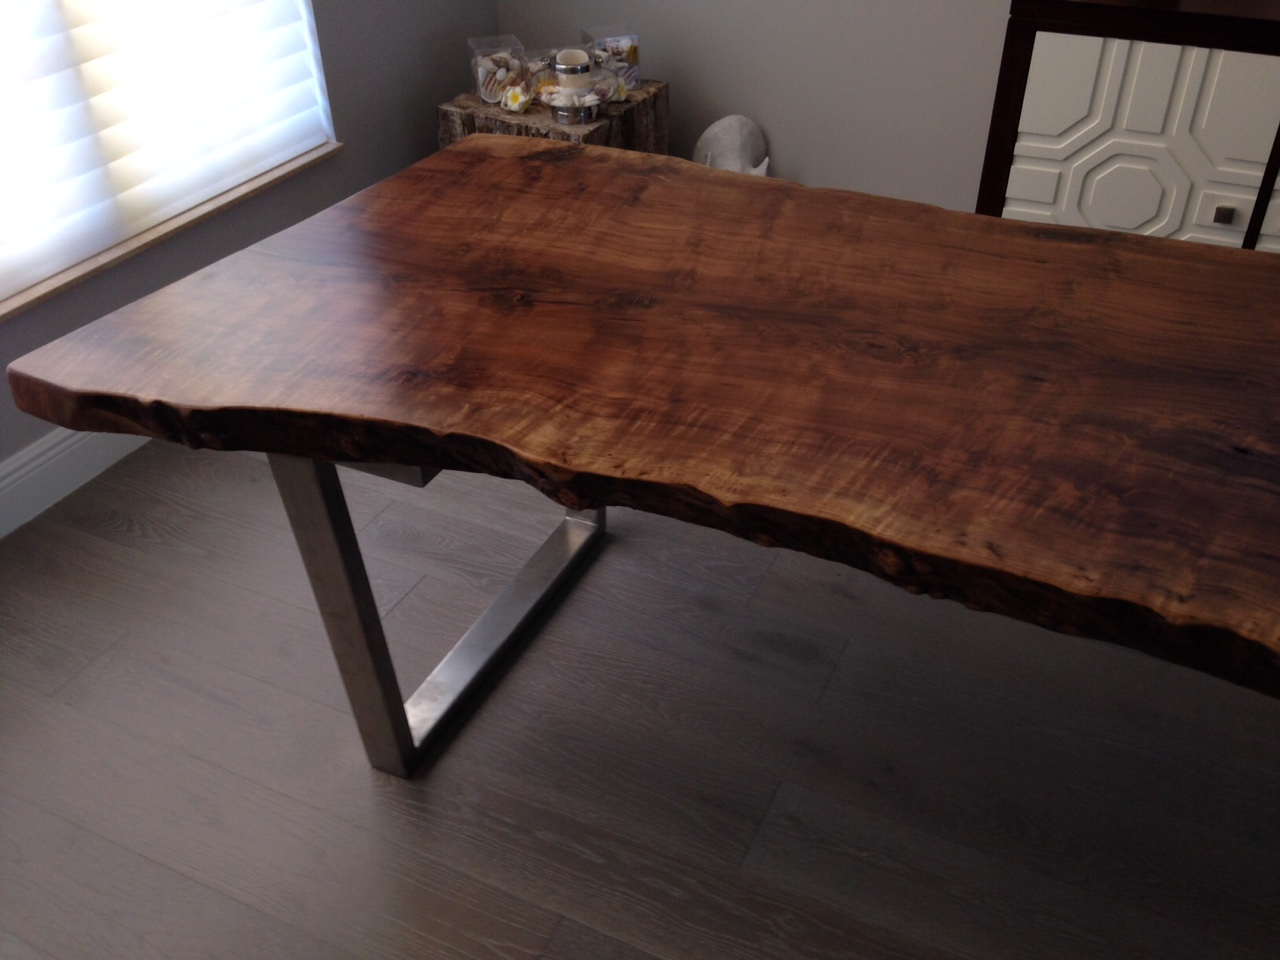 Walnut live edge dining table - Live Edge Table Live Edge Dining Table Walnut Dining Table Item 27